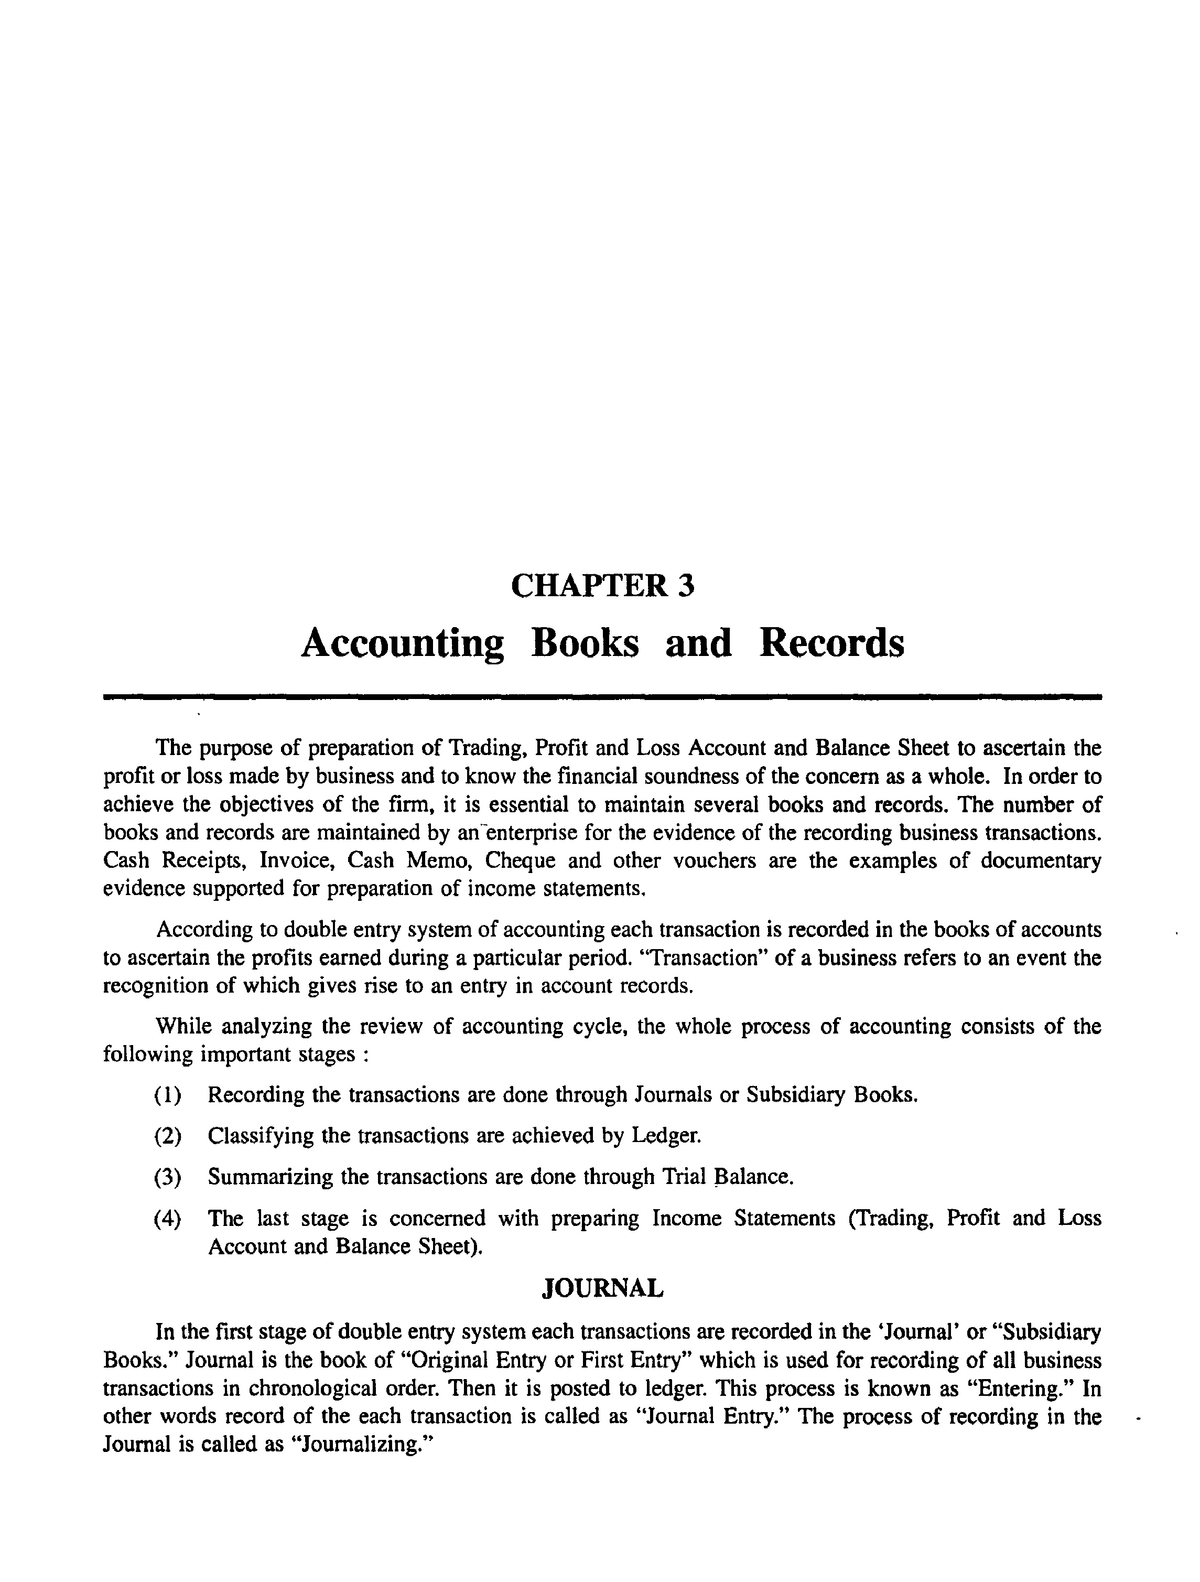 Chapter 3 Accounting Books and Records - AC310 - StuDocu